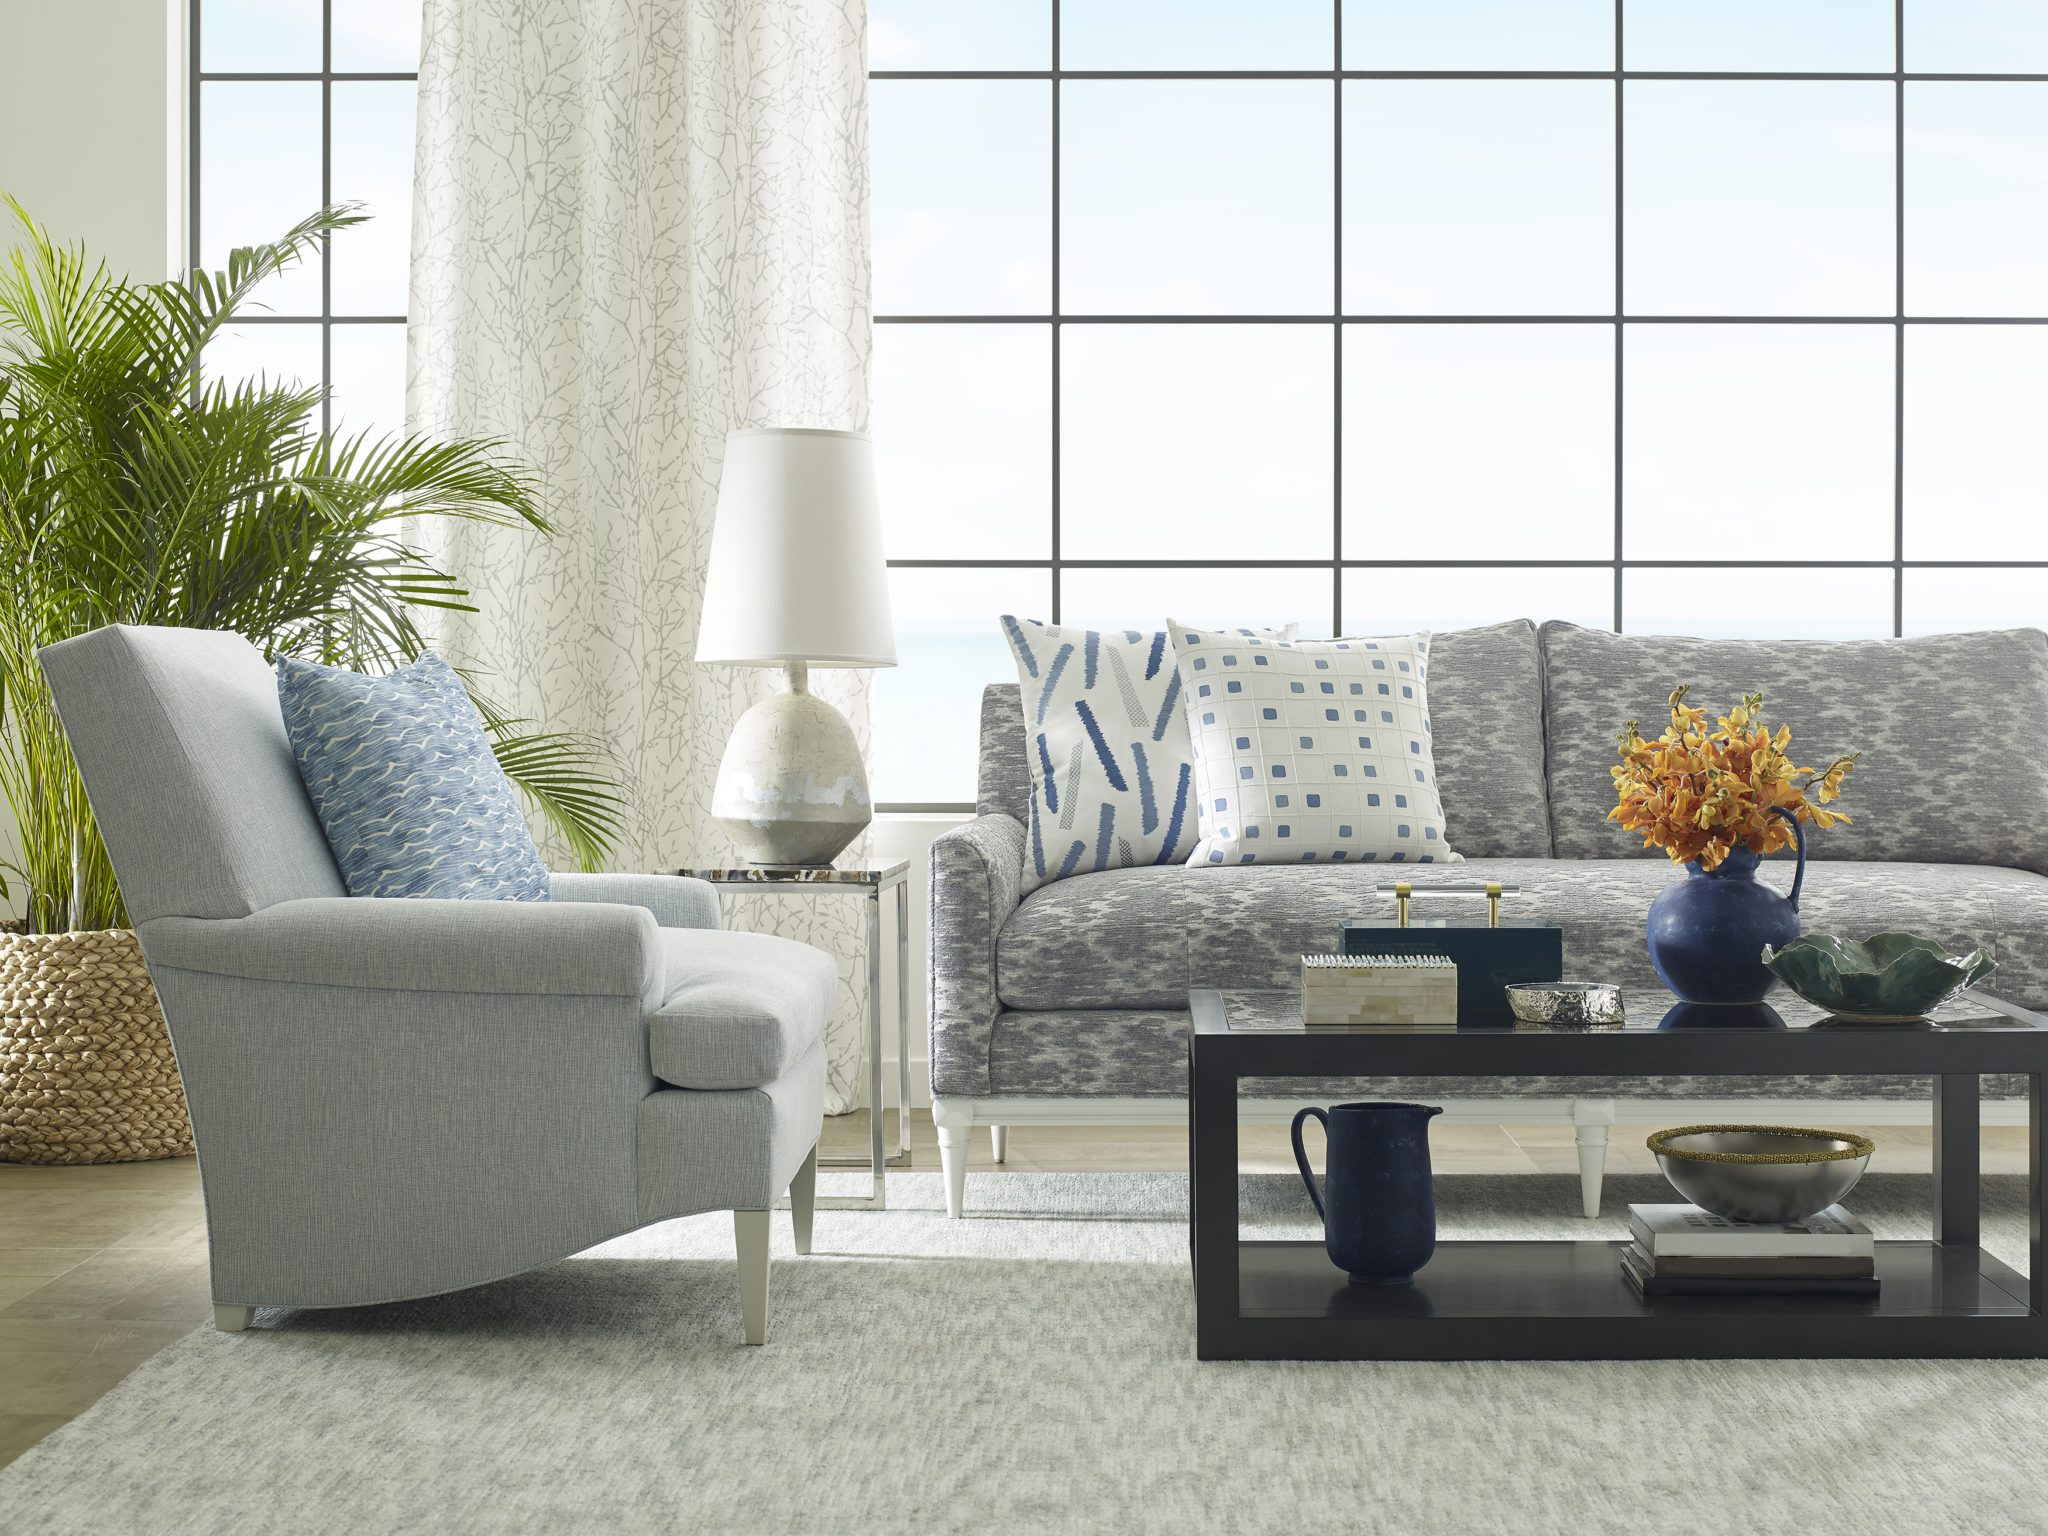 In this living room scene, the Tatsworth sofa is shown in the Immersive in Pewter fabric, with pillows covered (left to right) in Tramonto in Ocean and Gridwork in Ocean. The armchair is the Dorset chair, in the Mysto in Pacific fabric; the pillow is in Angelus in Pacific. In the background, the curtains are Branches in Pewter; the side table is the Arvada side table, with the Maria lamp atop it. In the foreground, the Millbrook cocktail table is shown, decorated with the Yuma box, Foster presentation box, Noemi polished agate bowl, Anson vase, Linden bowl, Beatrice vase, and Mauna bowl.